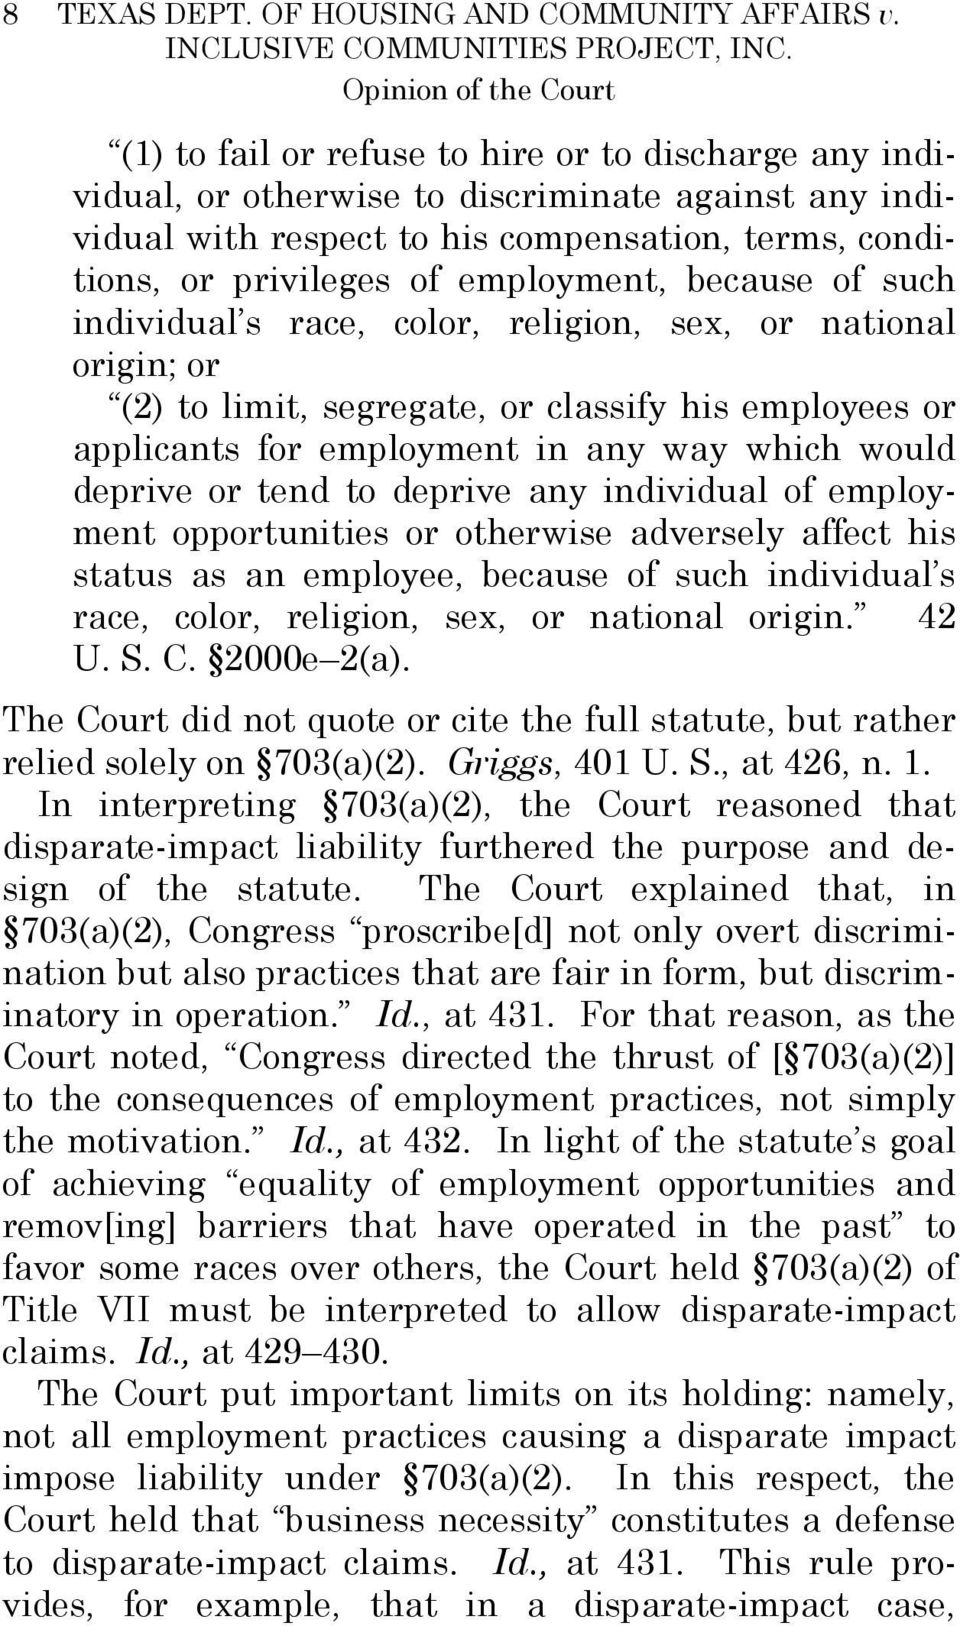 privileges of employment, because of such individual s race, color, religion, sex, or national origin; or (2) to limit, segregate, or classify his employees or applicants for employment in any way